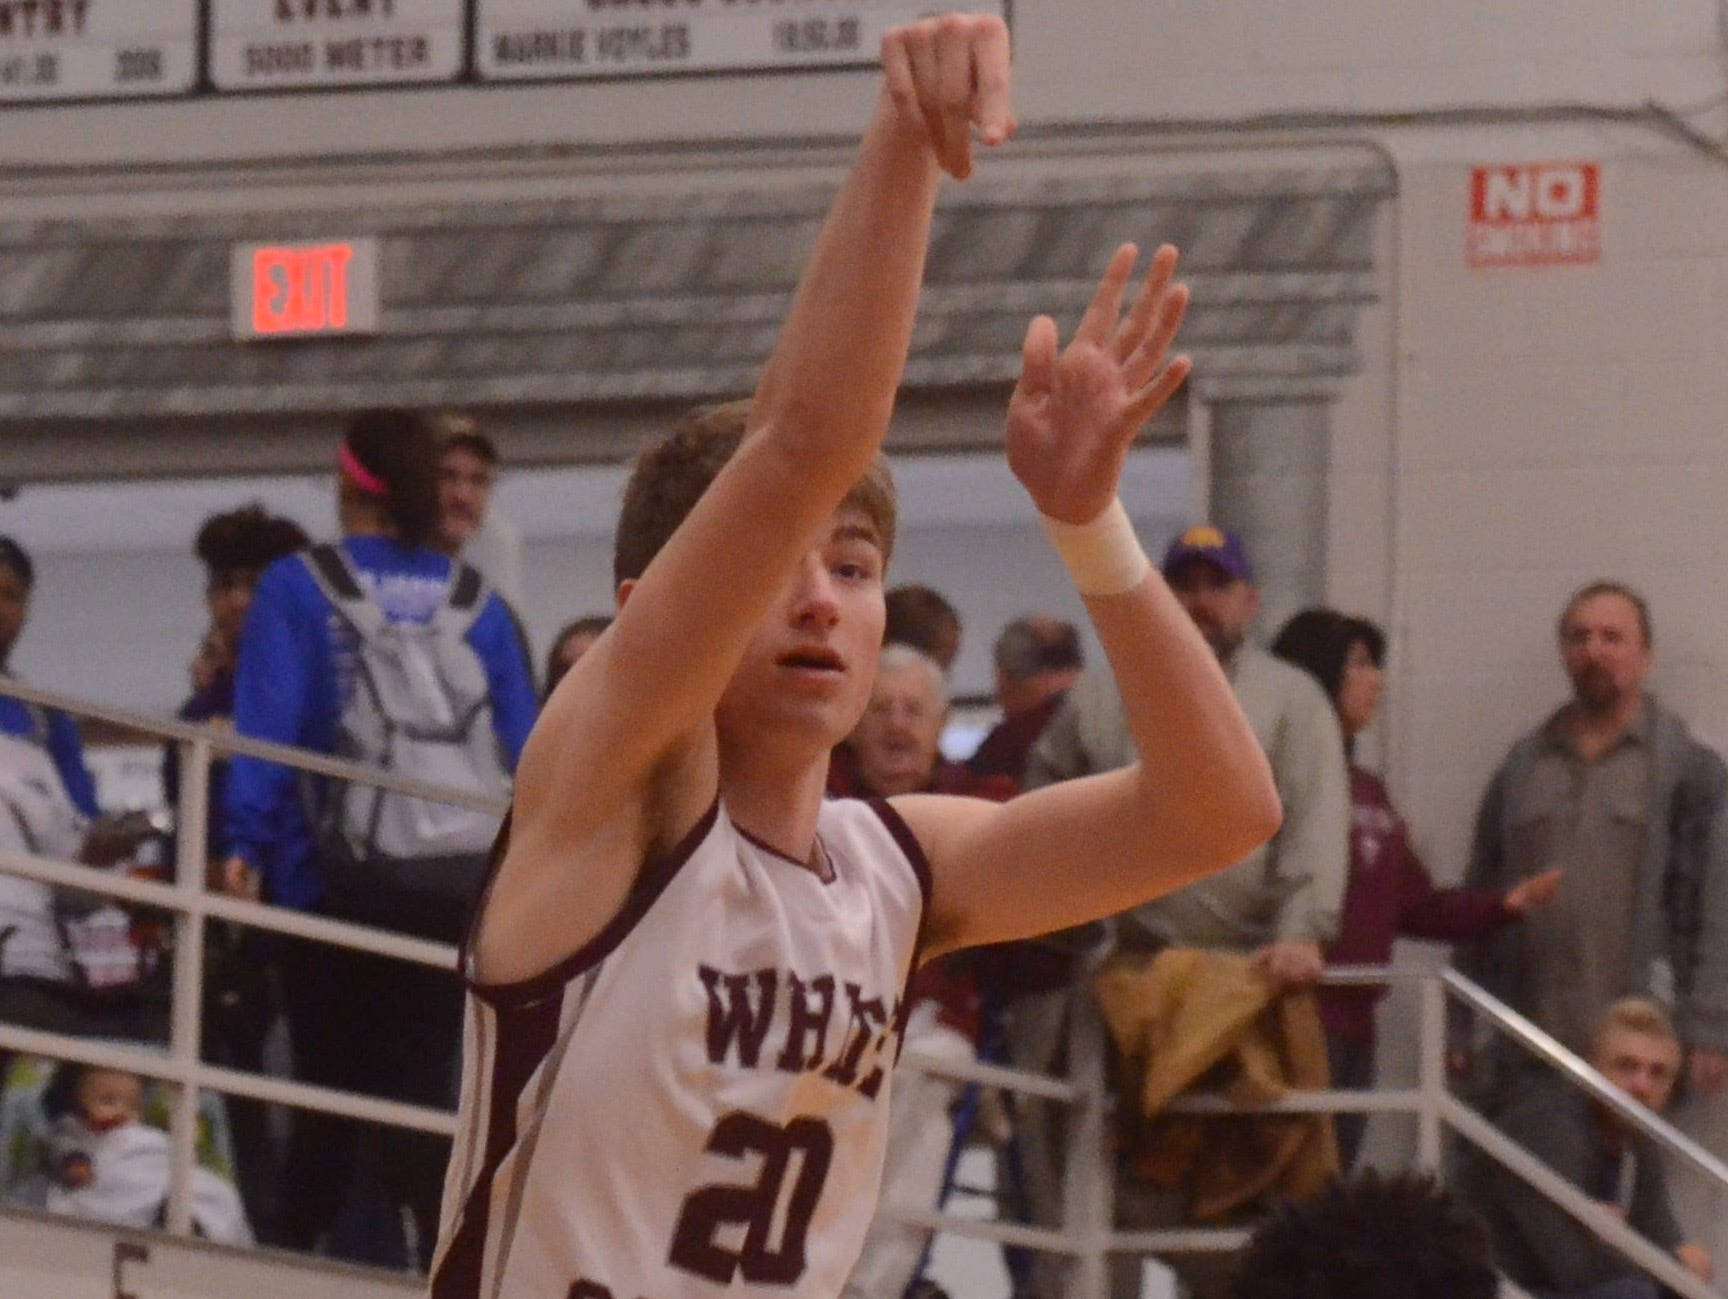 White County's Pierce Whited, who is averaging a team-leading 20 points per game, has knocked down over 100 3-pointers on the season.